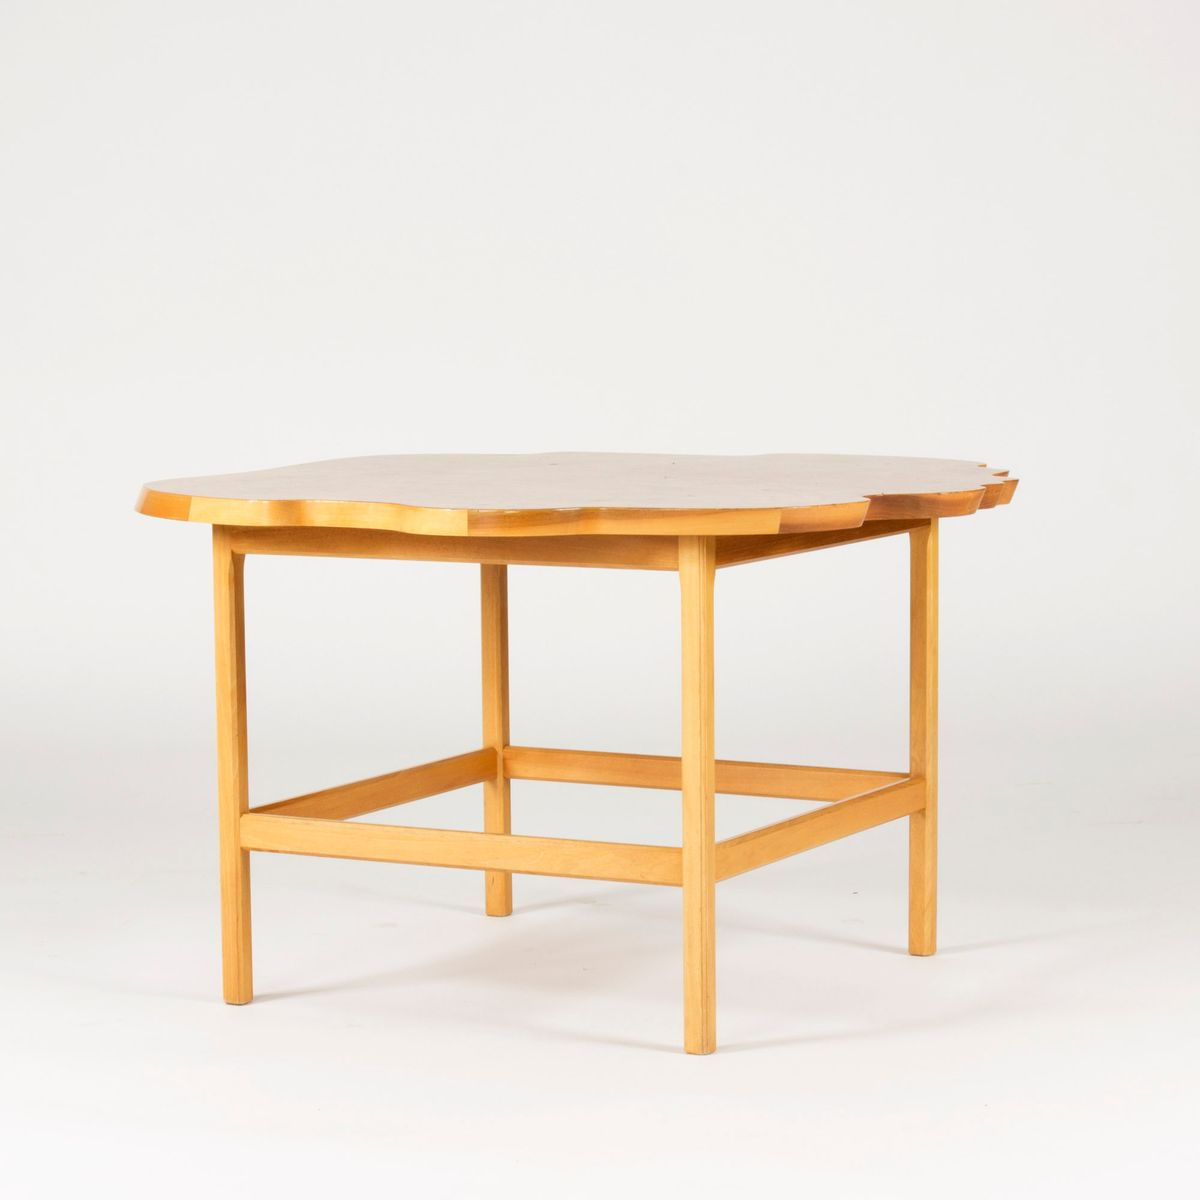 Alder root coffee table by josef frank for svenskt tenn 1950s for alder root coffee table by josef frank for svenskt tenn 1950s for sale at pamono geotapseo Image collections